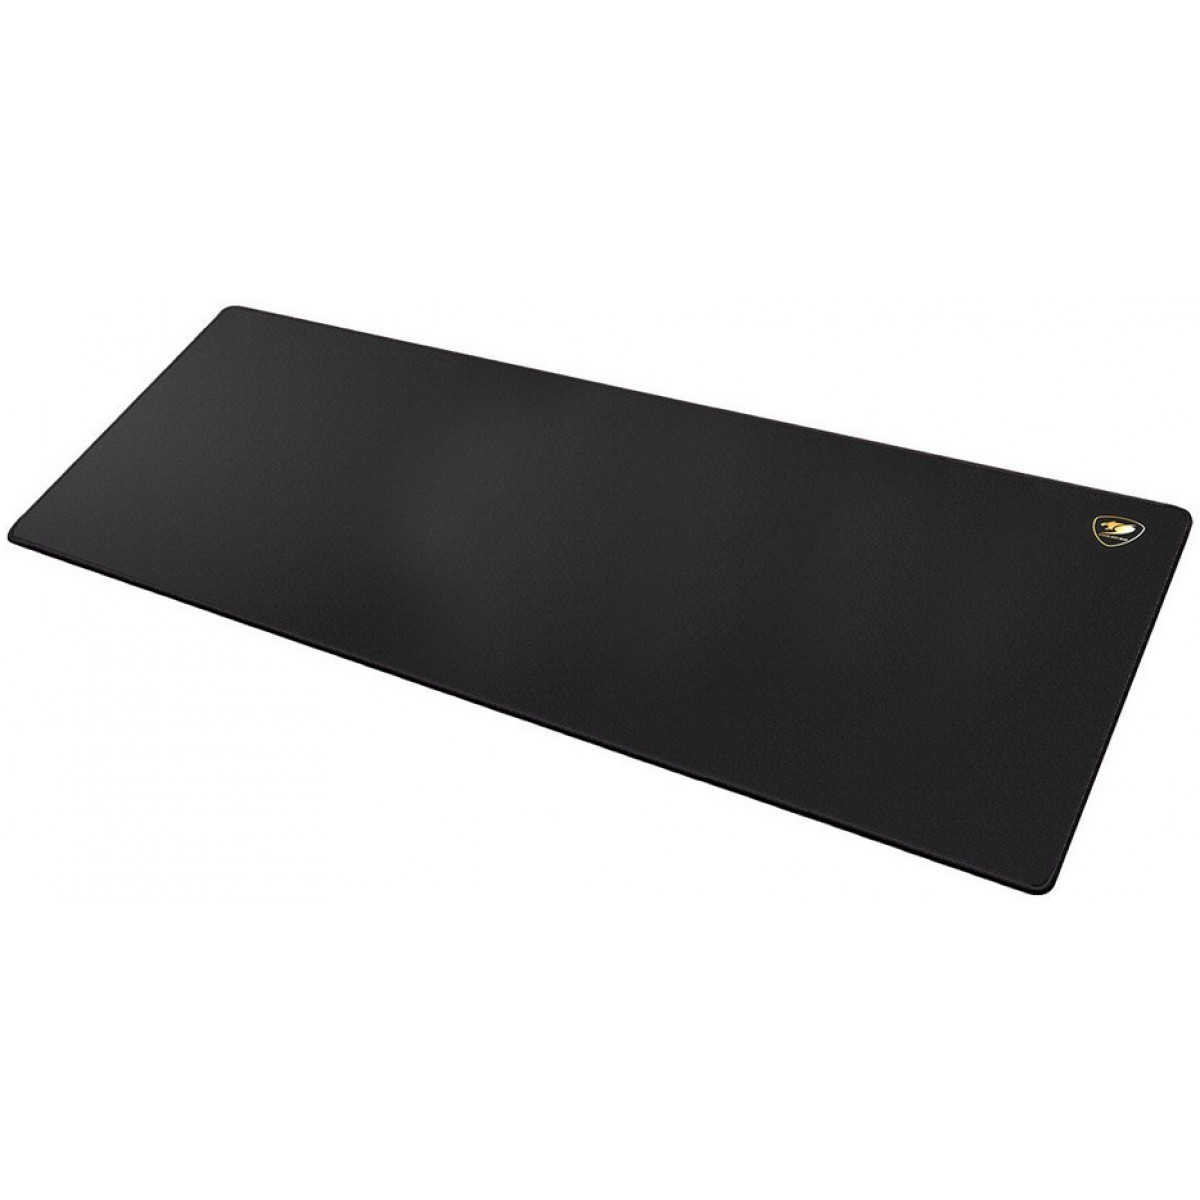 Mousepad Gamer Cougar Speed EX XL, 3MSPDNXL.0001